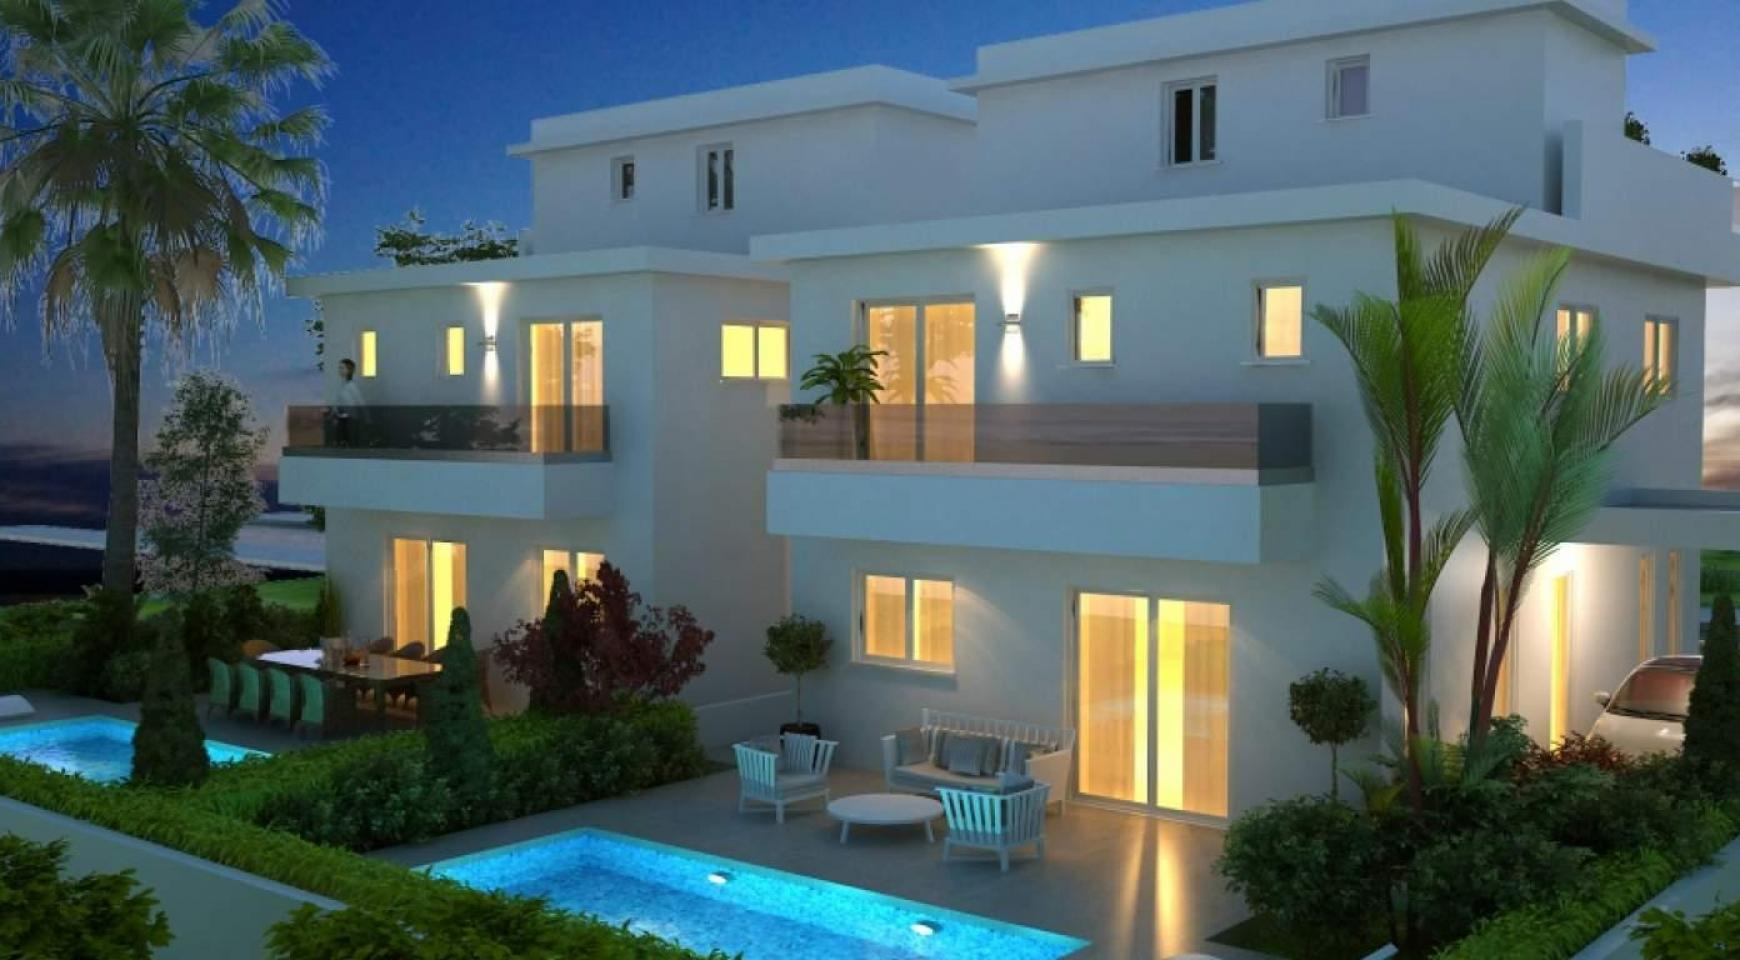 New Modern 4 Bedroom House in Leivadia Area - 1